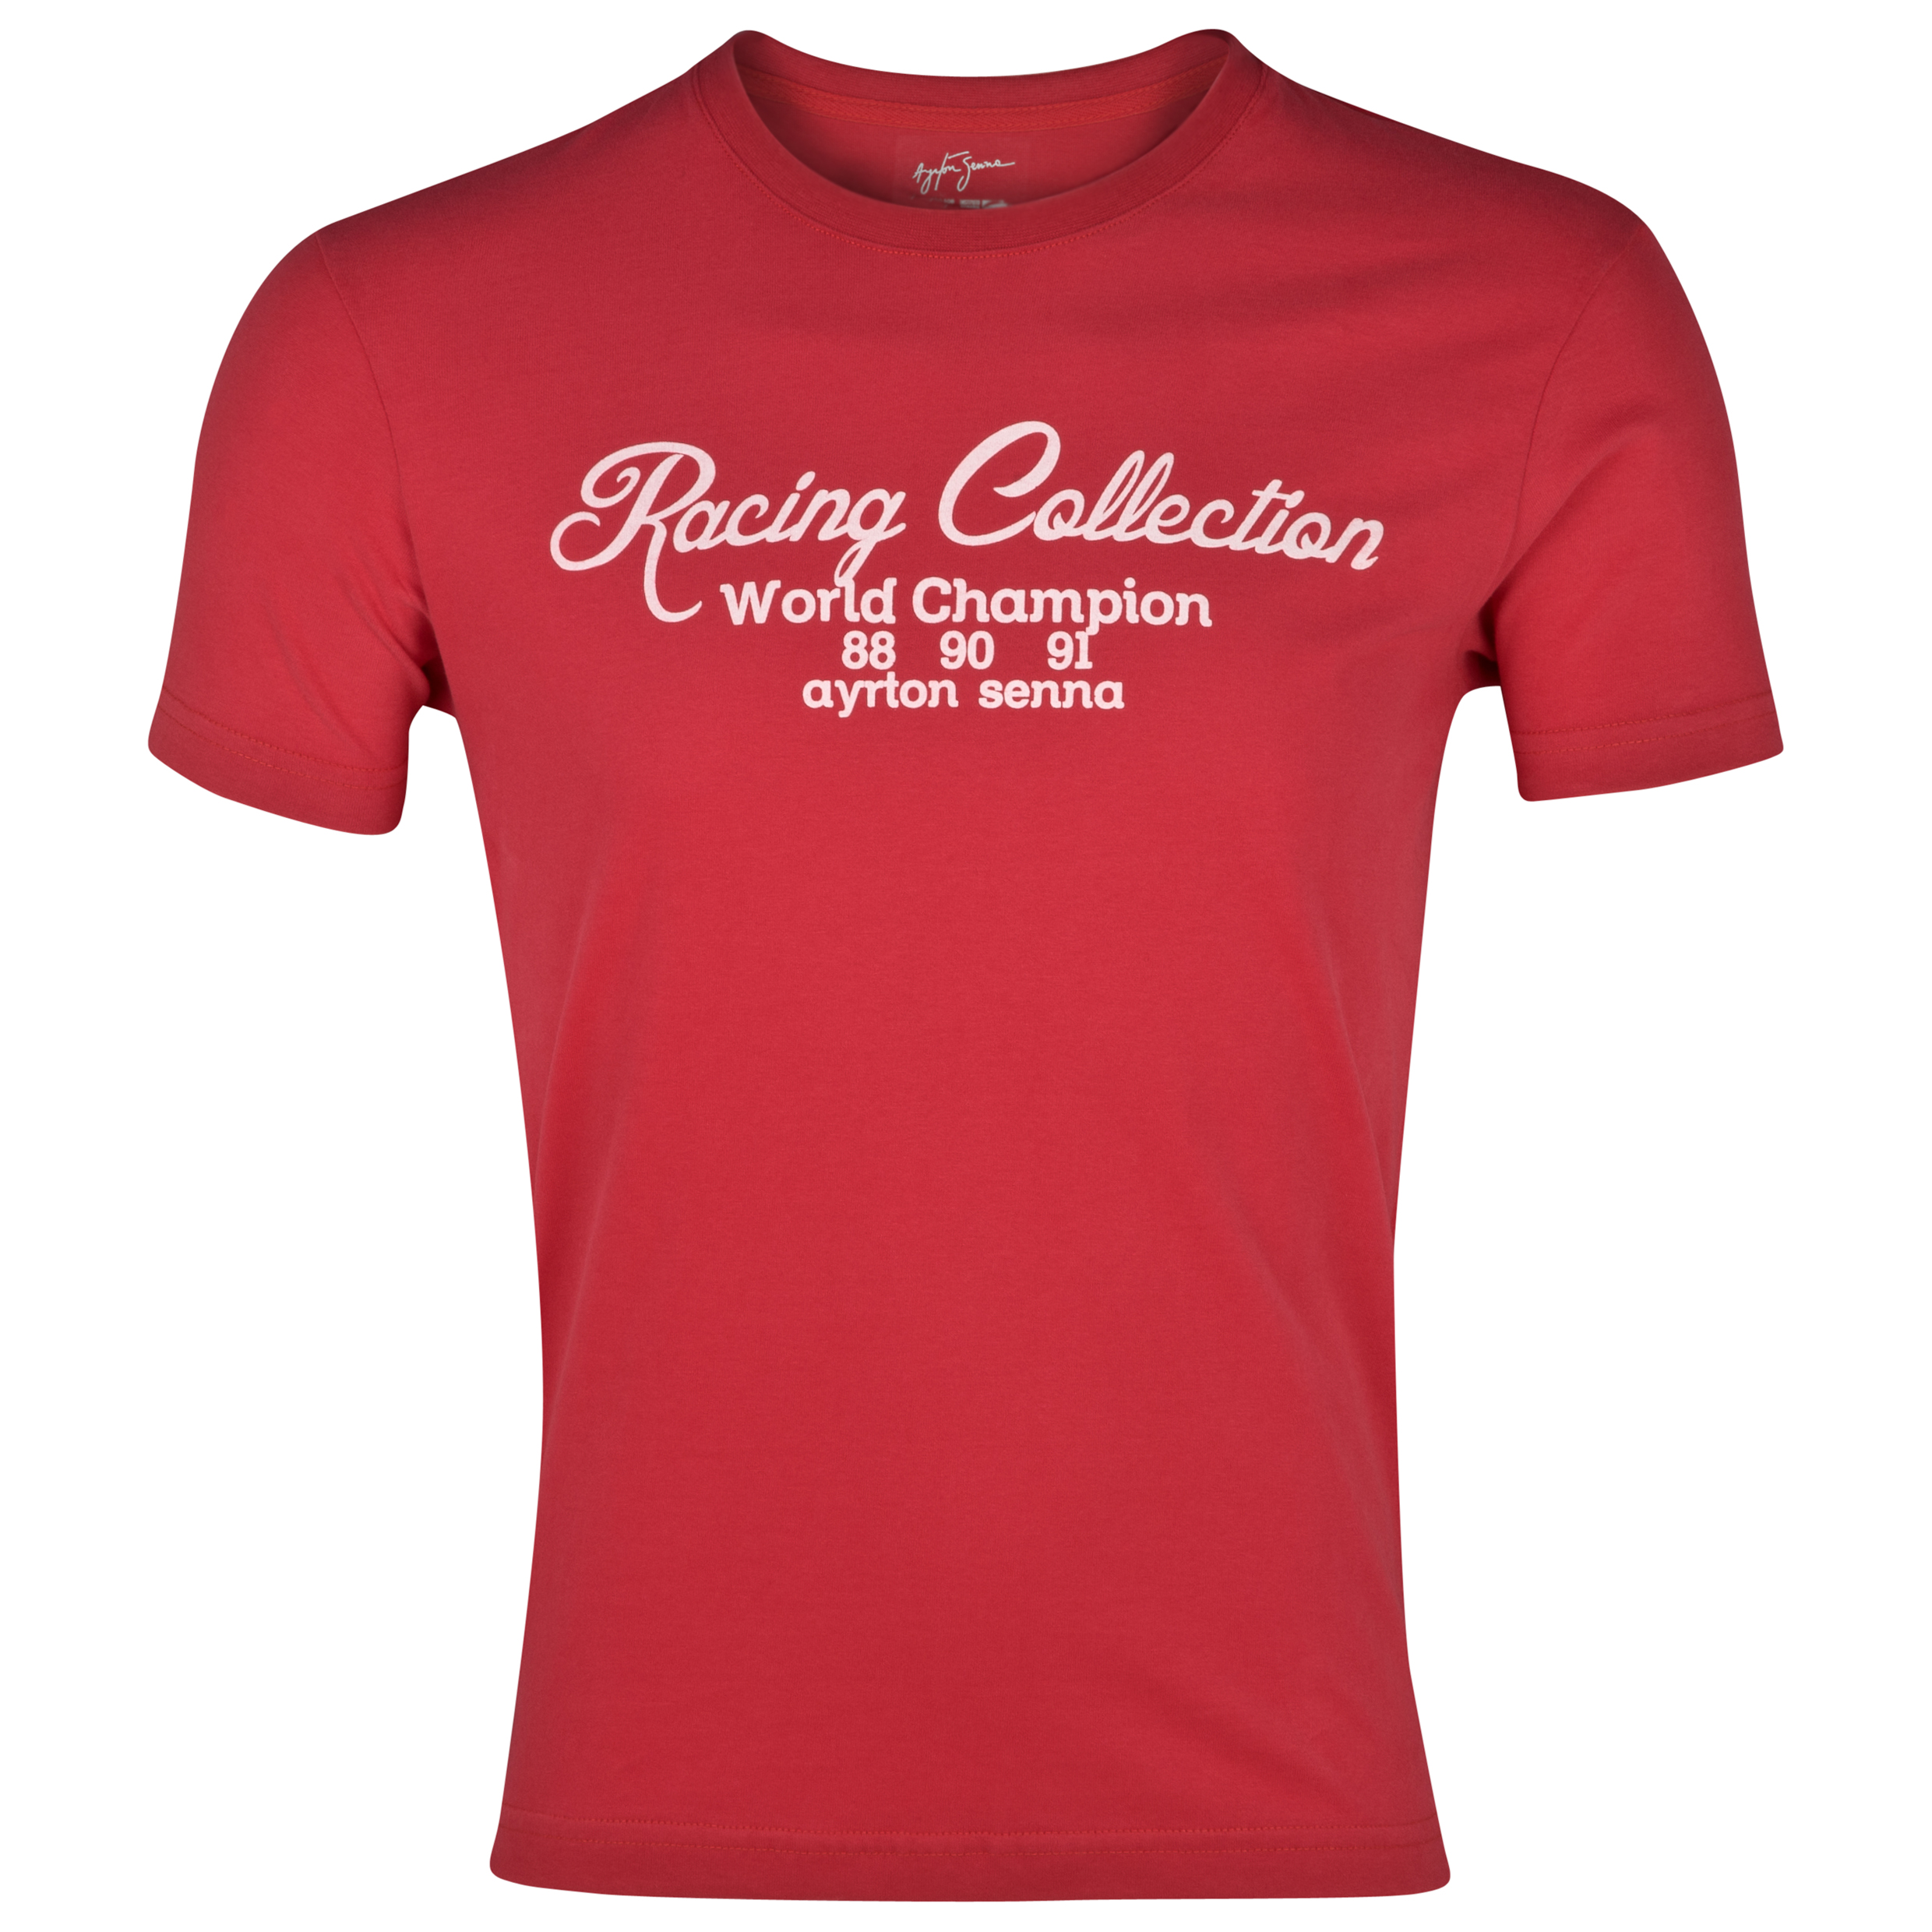 Ayrton Senna Racing Collection T-Shirt  - Red